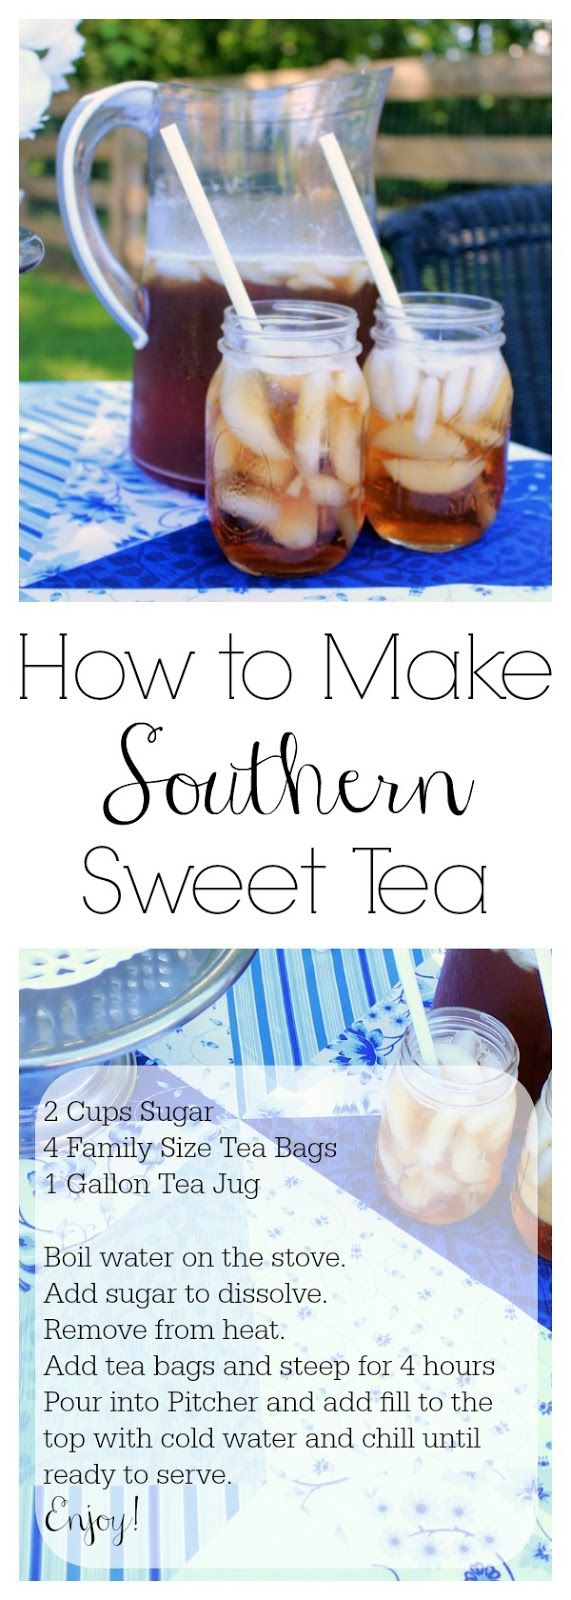 Creating an Southern outdoor escape without sewing and a recipe for true southern sweet tea!